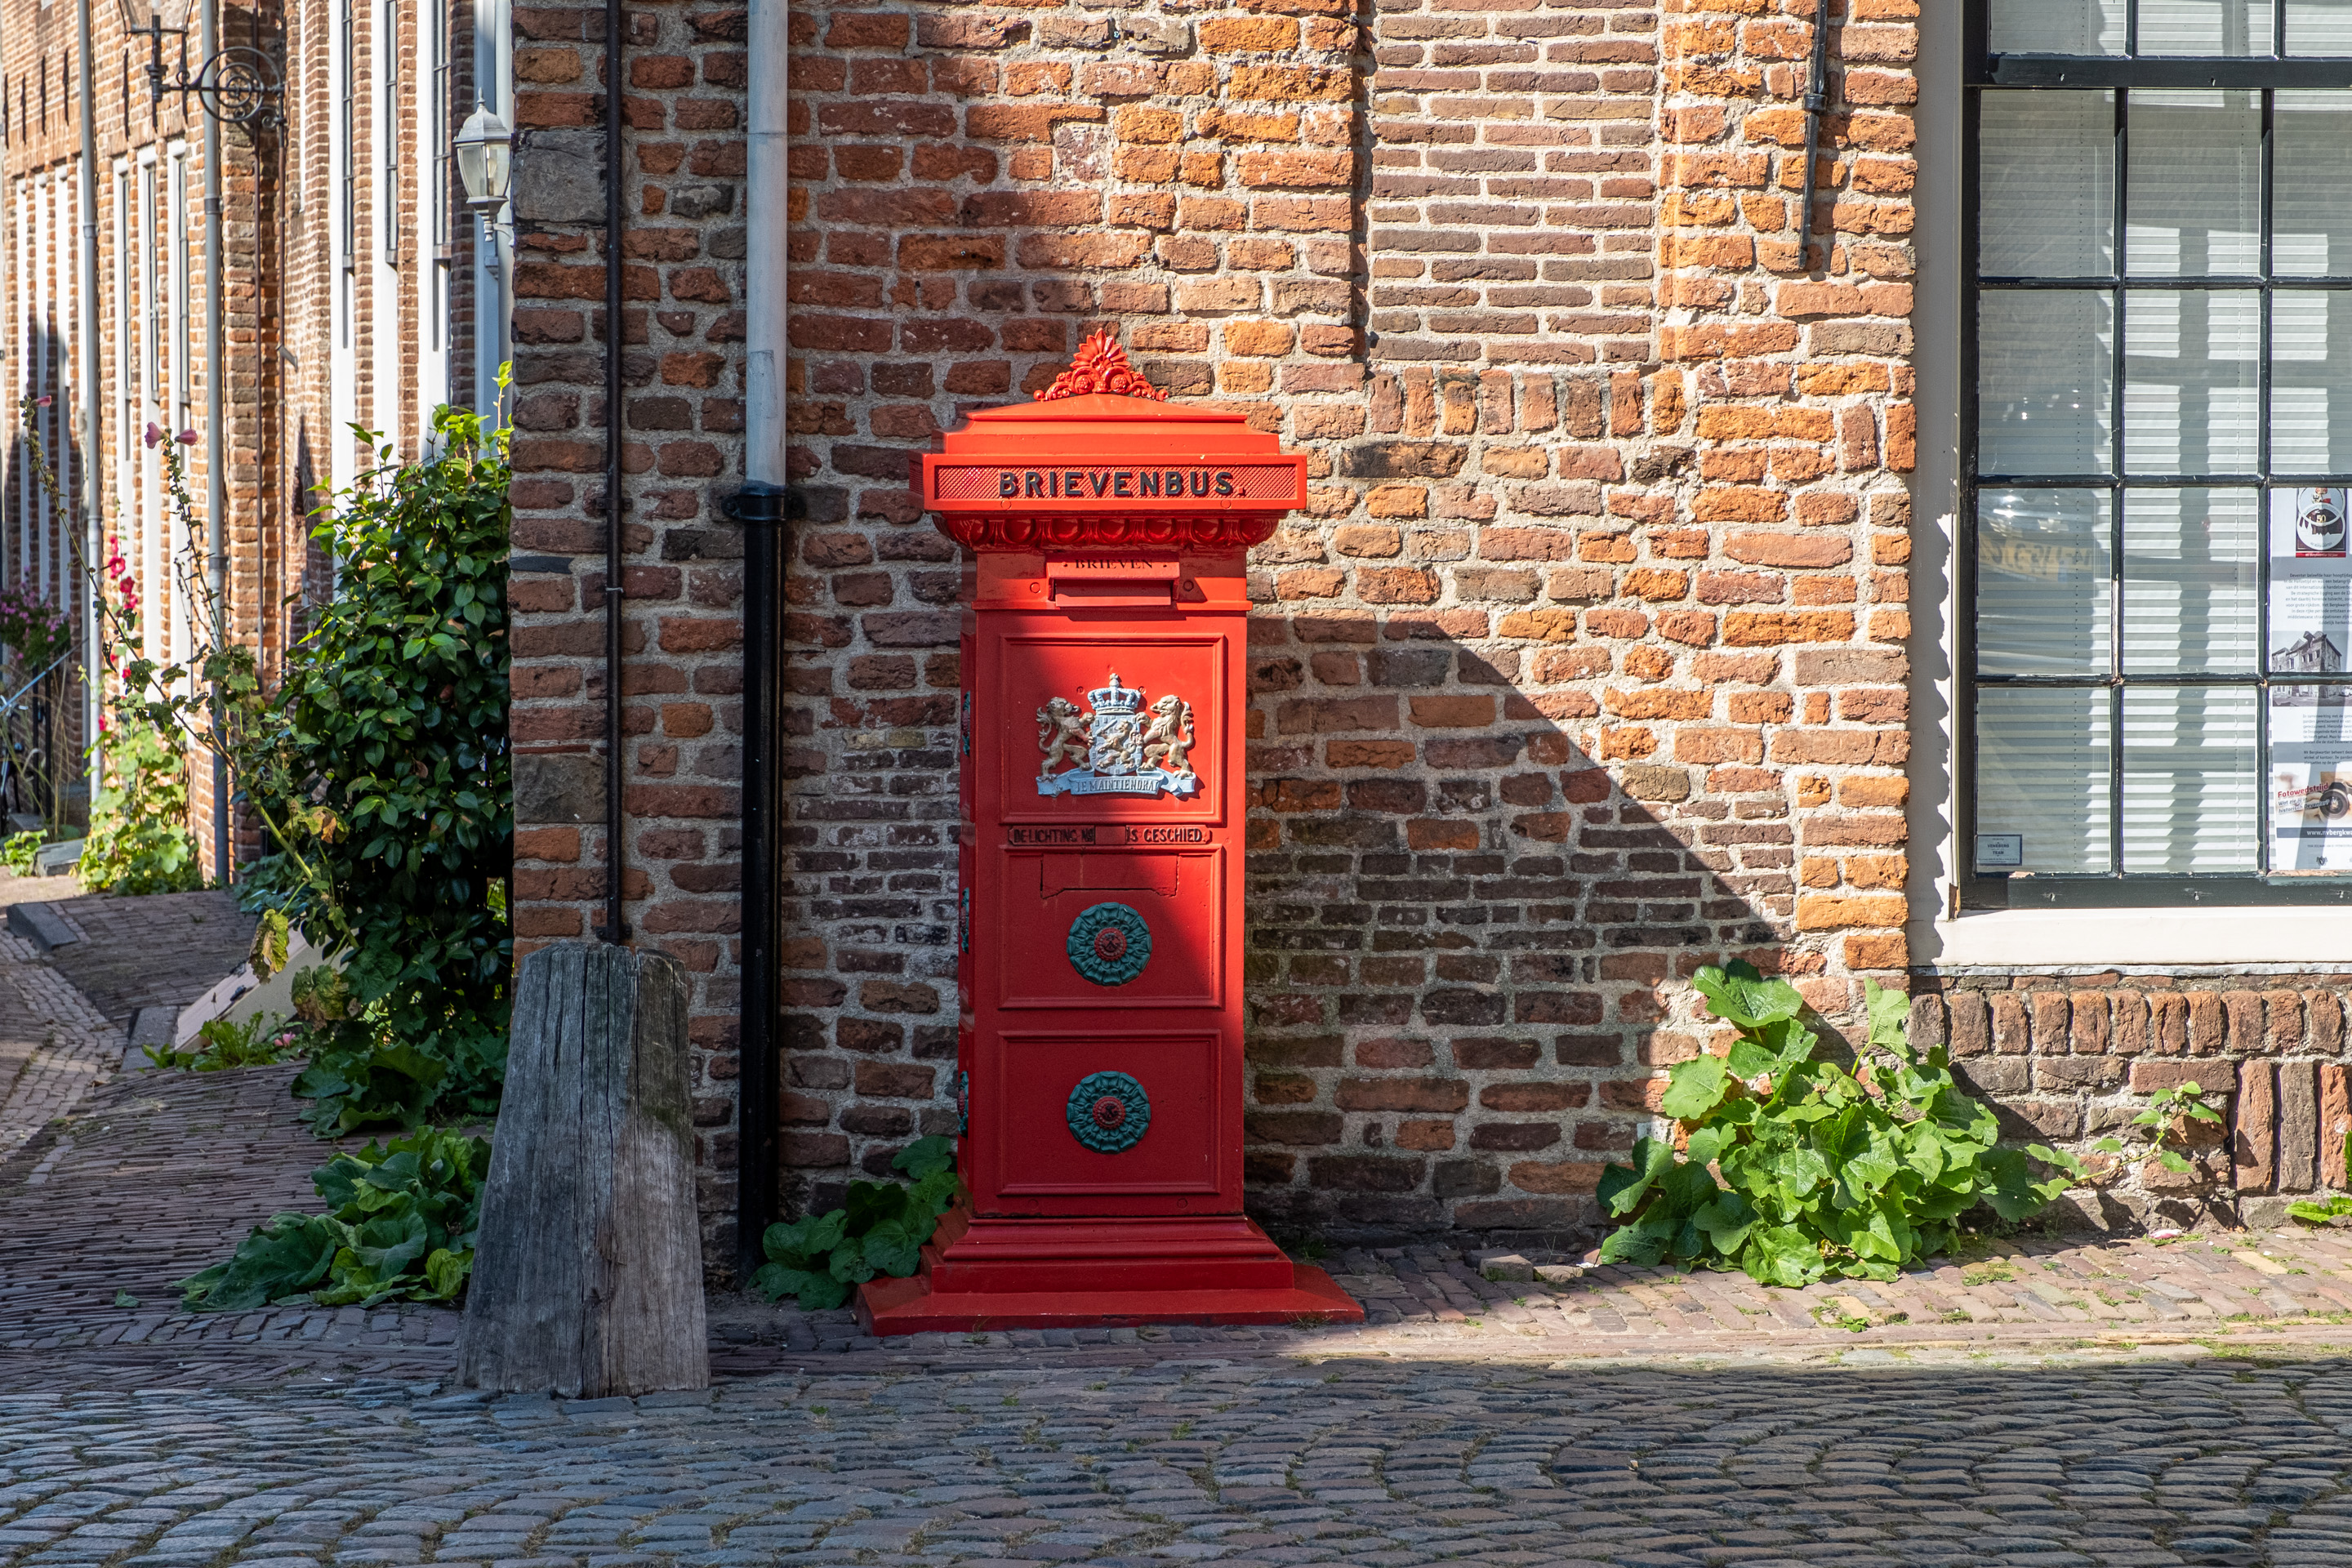 Deventer-21-september-2019-33